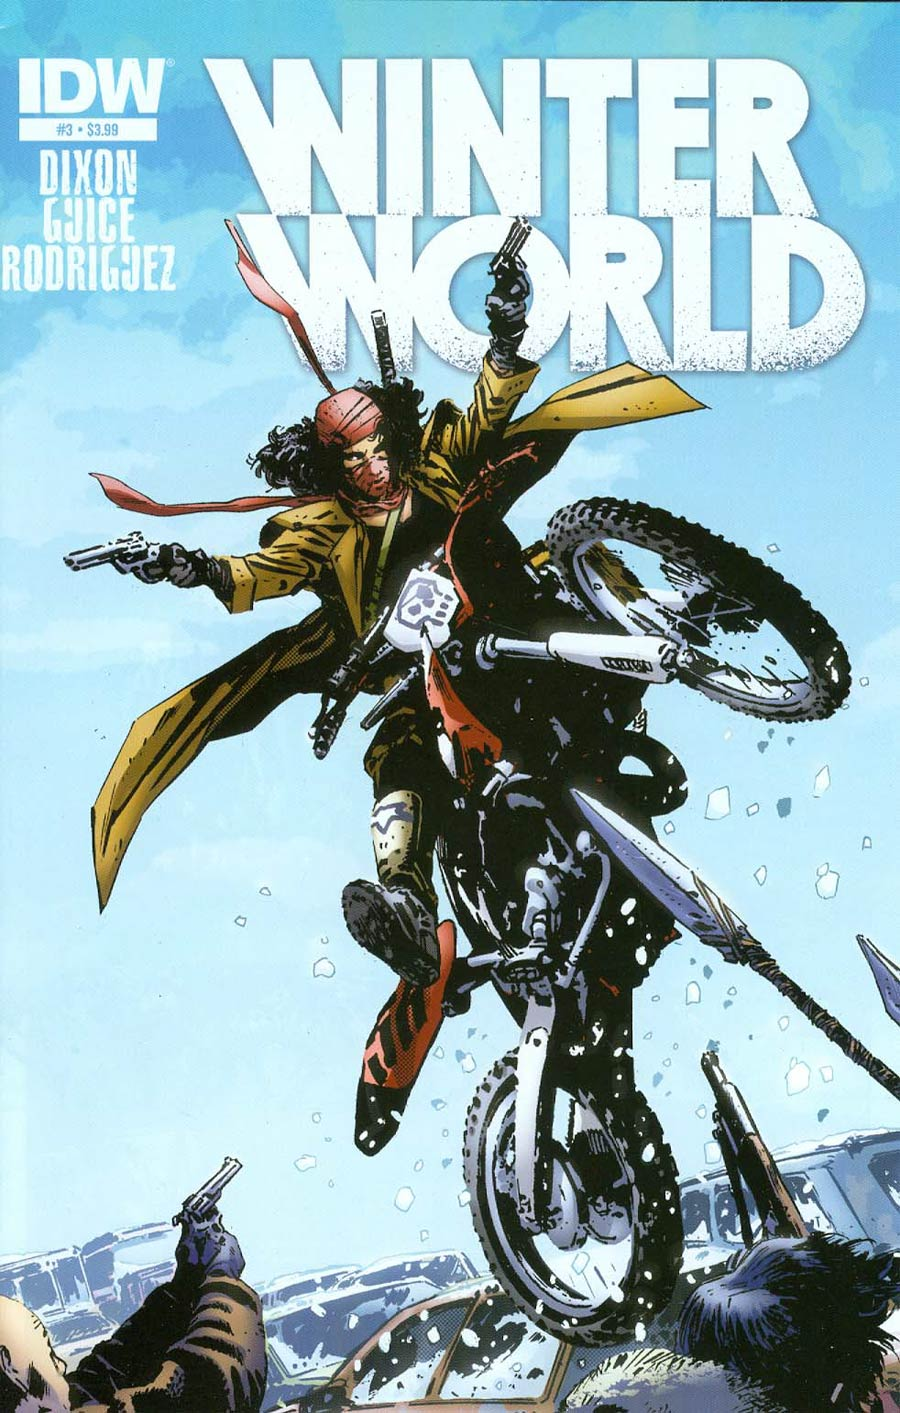 Winterworld Vol 2 #3 Cover A Regular Butch Guice Cover